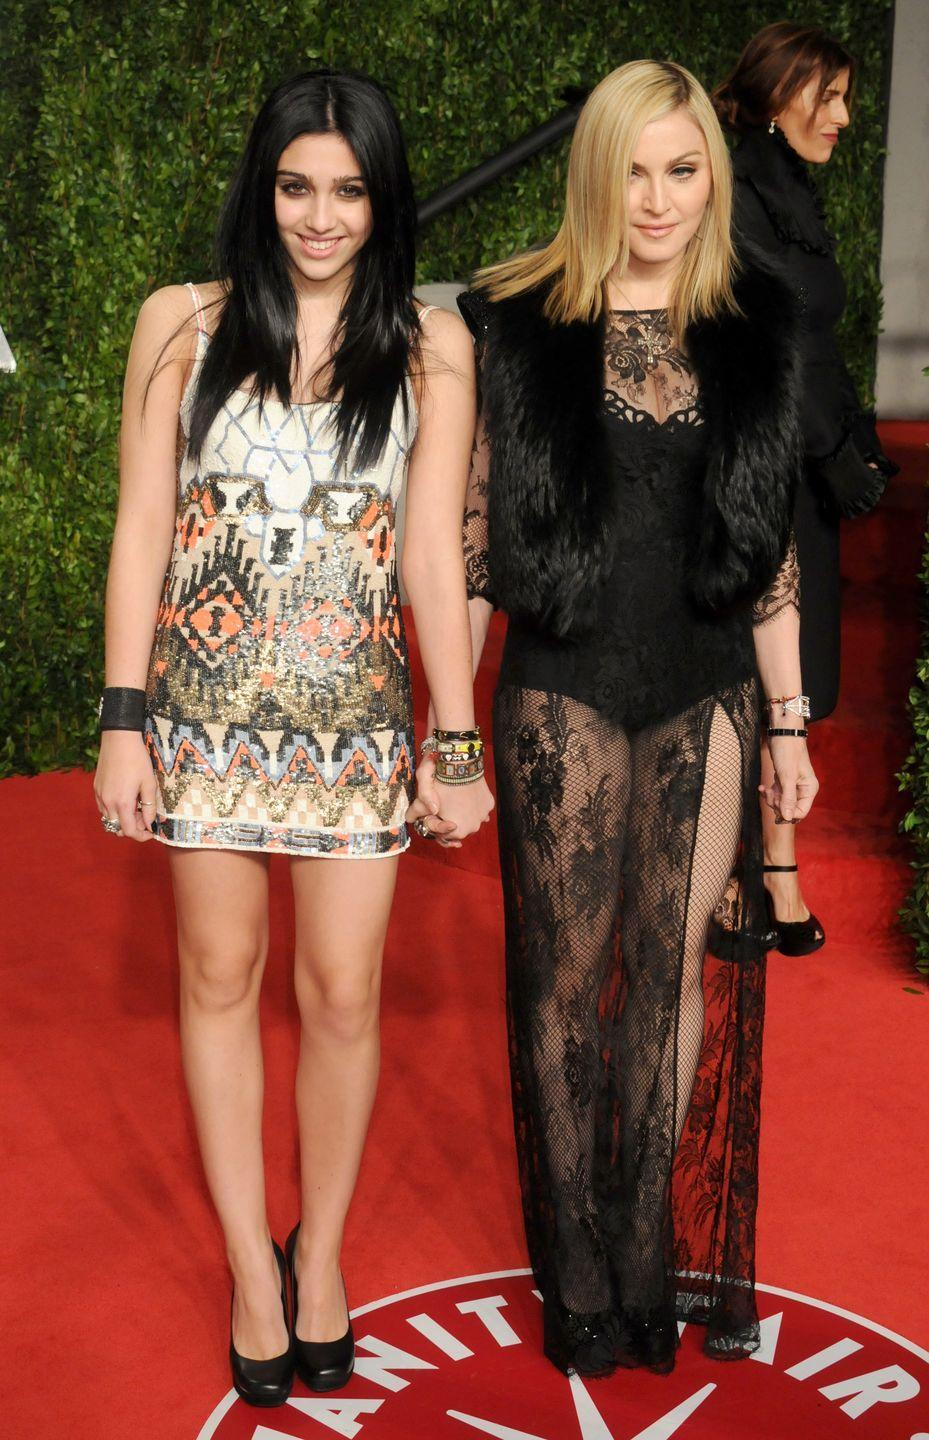 <p>Lourdes Leon not only inherited her mom's iconic edgy and daring style, but also her looks. Though it doesn't seem like the 23-year-old will follow in the footsteps of the Queen of Pop's music career (not yet, at least), she has already dabbled in the world of modeling. </p>